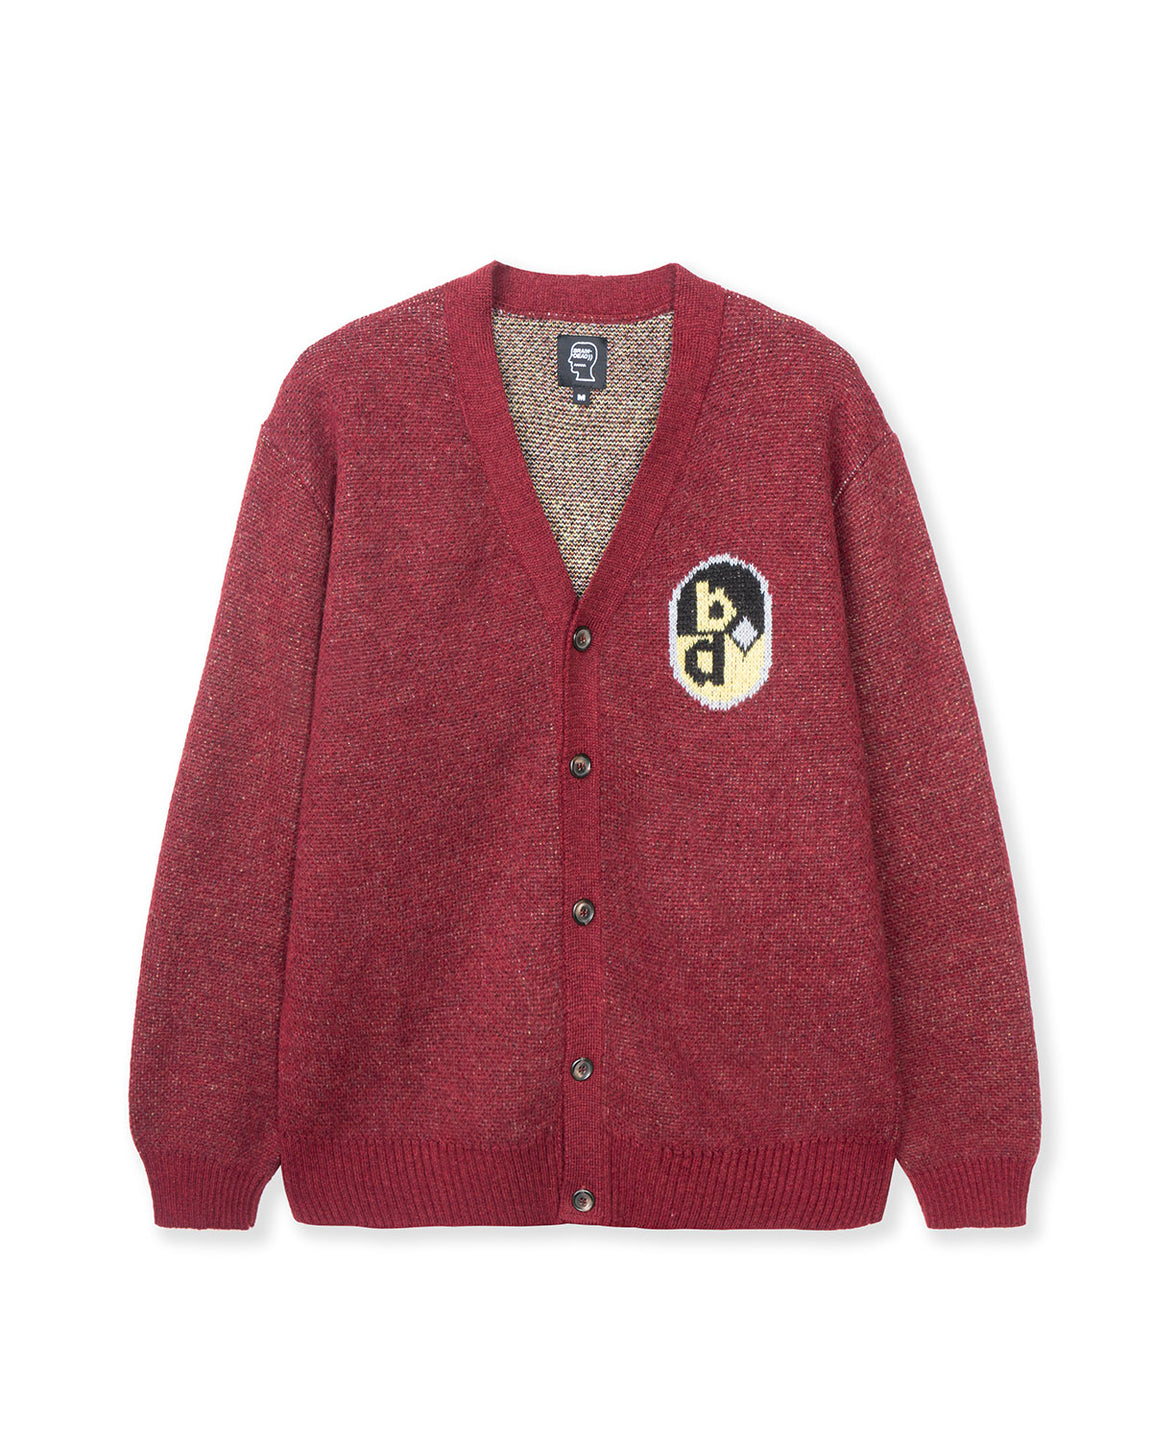 Sunshine Button Down Cardigan - Maroon